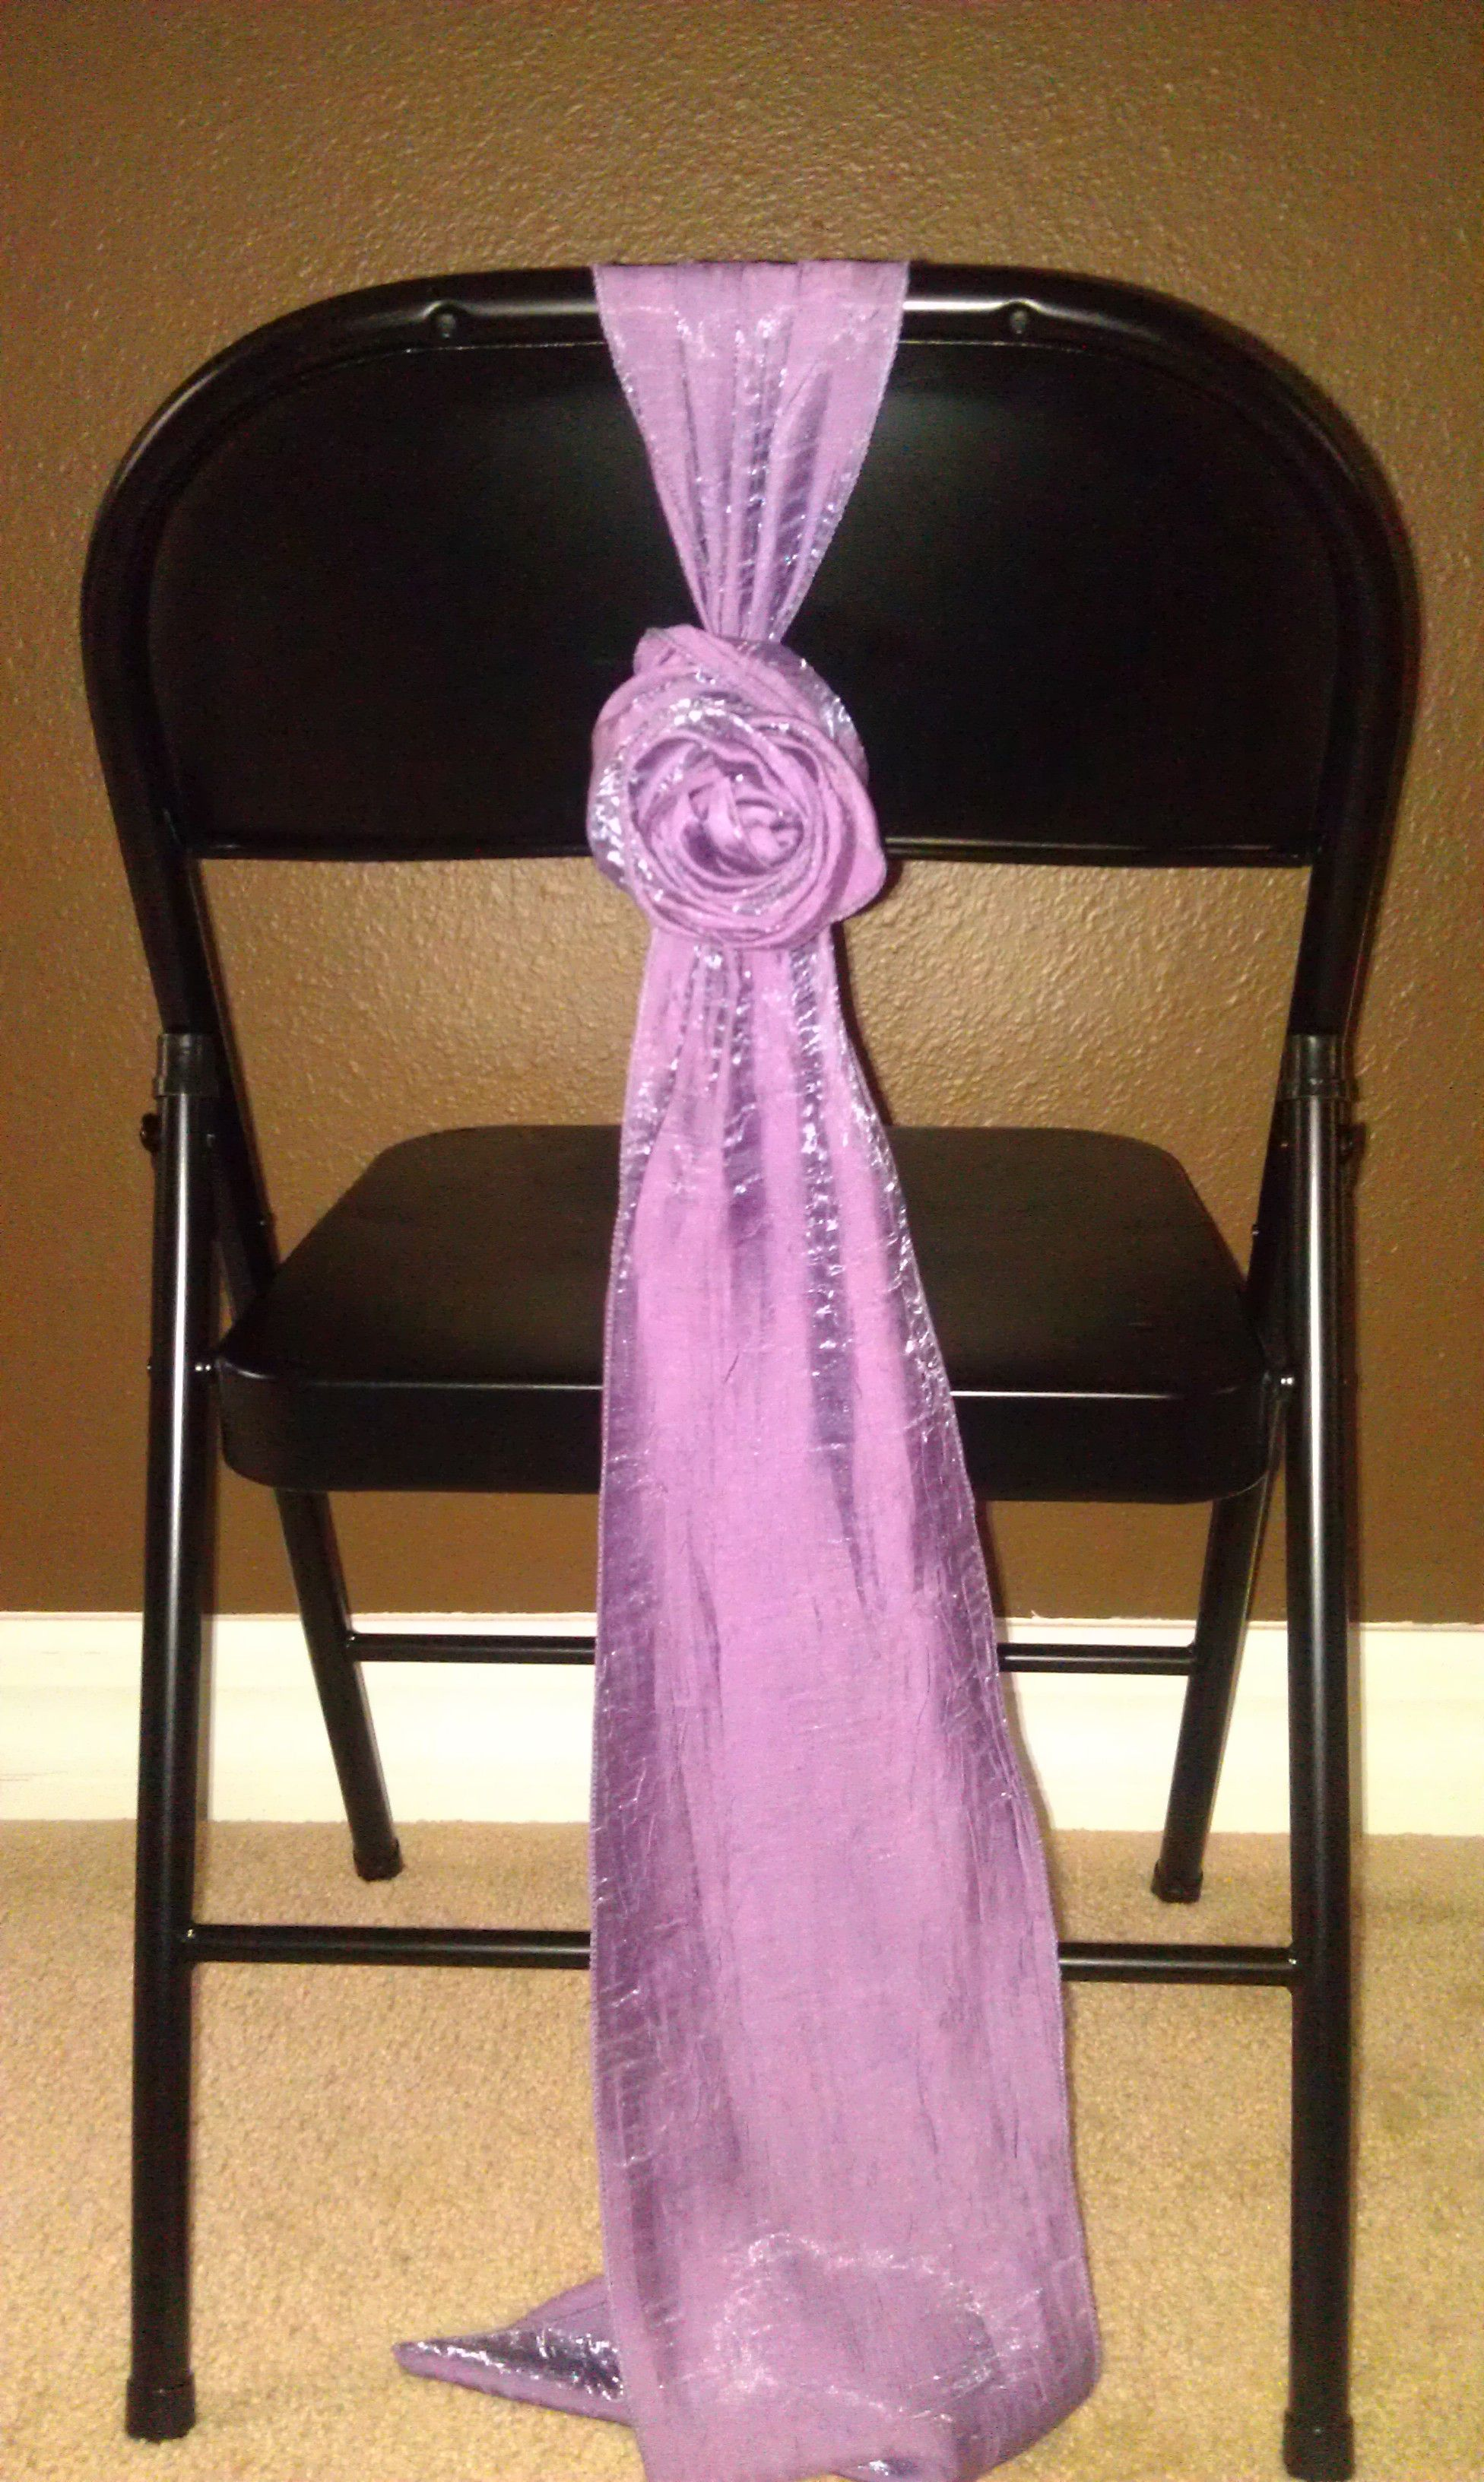 Rose sash tie for metal folding chair without a chair cover